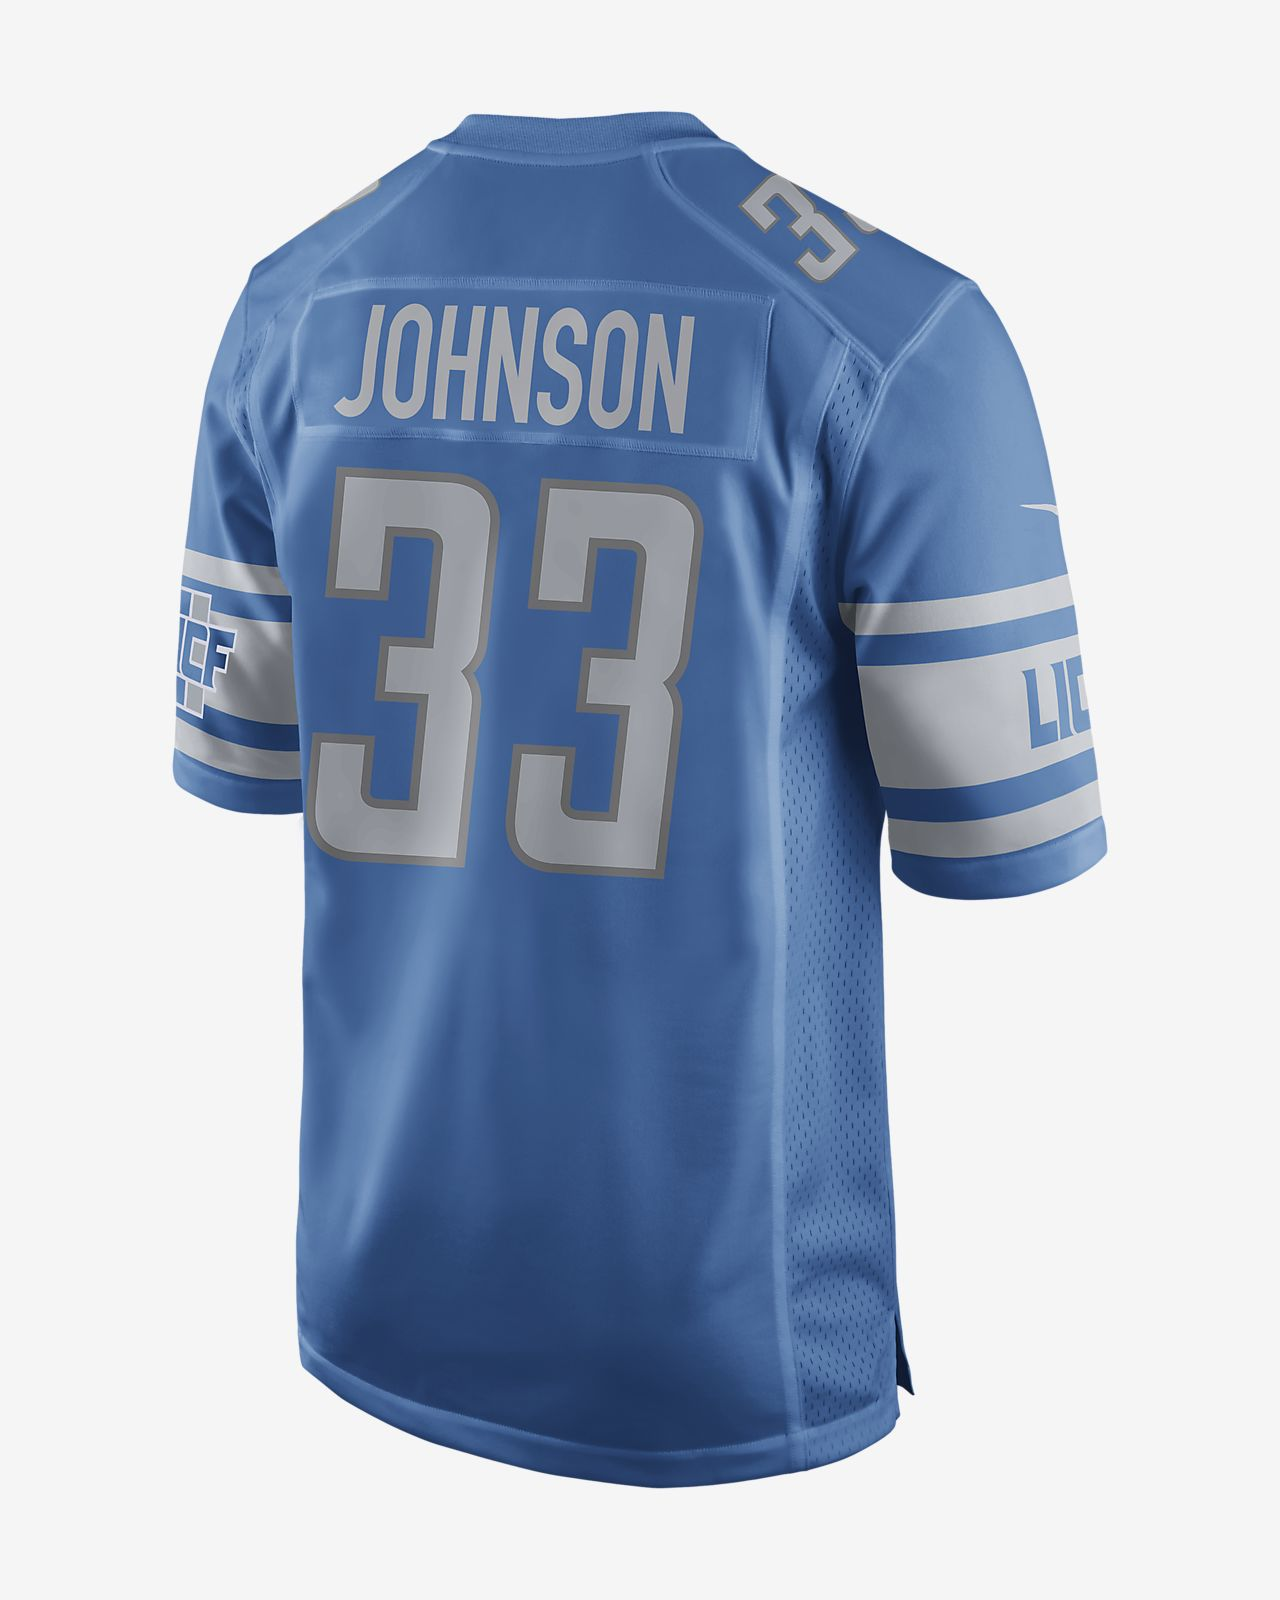 Jersey Nike Nike Lions Lions adbdfaffbdcef|Receive Your Individual 49er Tickets And Get Pleasure From Each Game